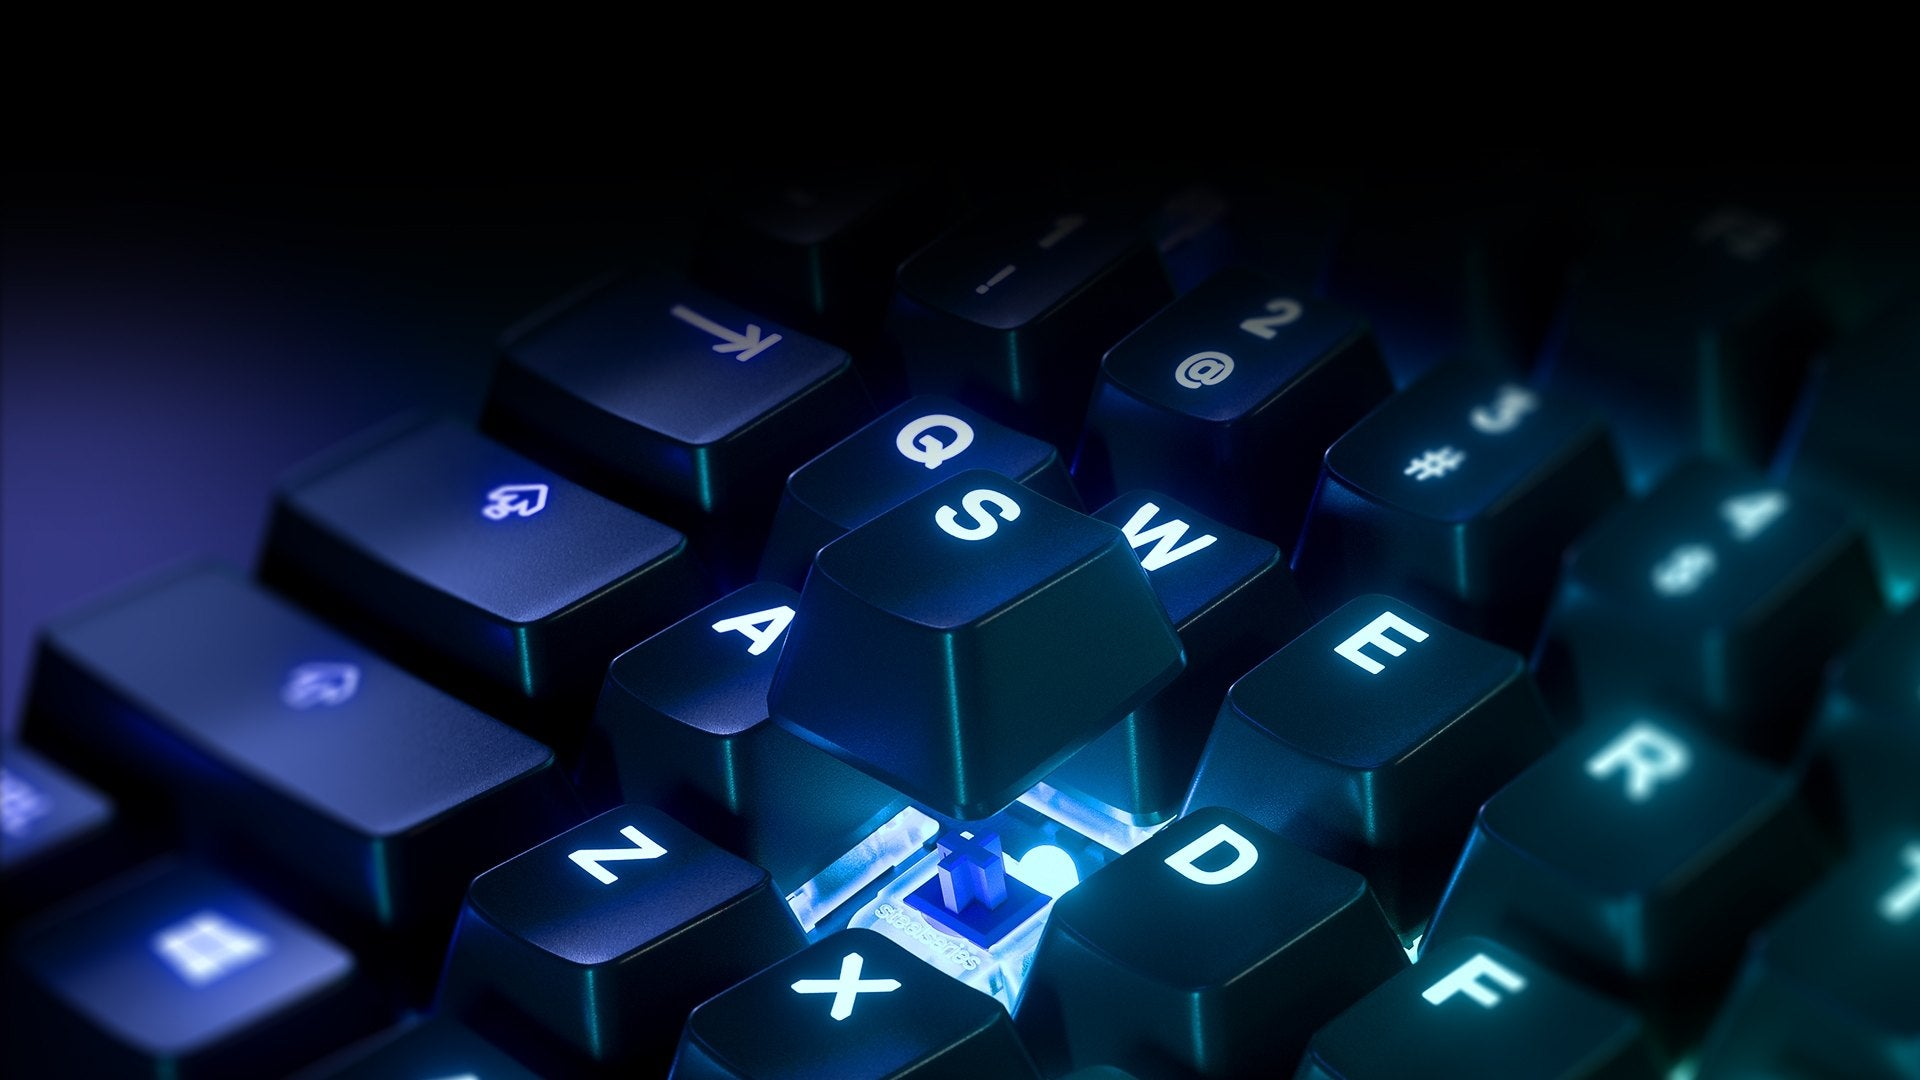 Durable Mechanical Gaming Switches - Guaranteed for 50 million keypresses using whichever ultra-fast switch type you prefer: red, blue, or brown.